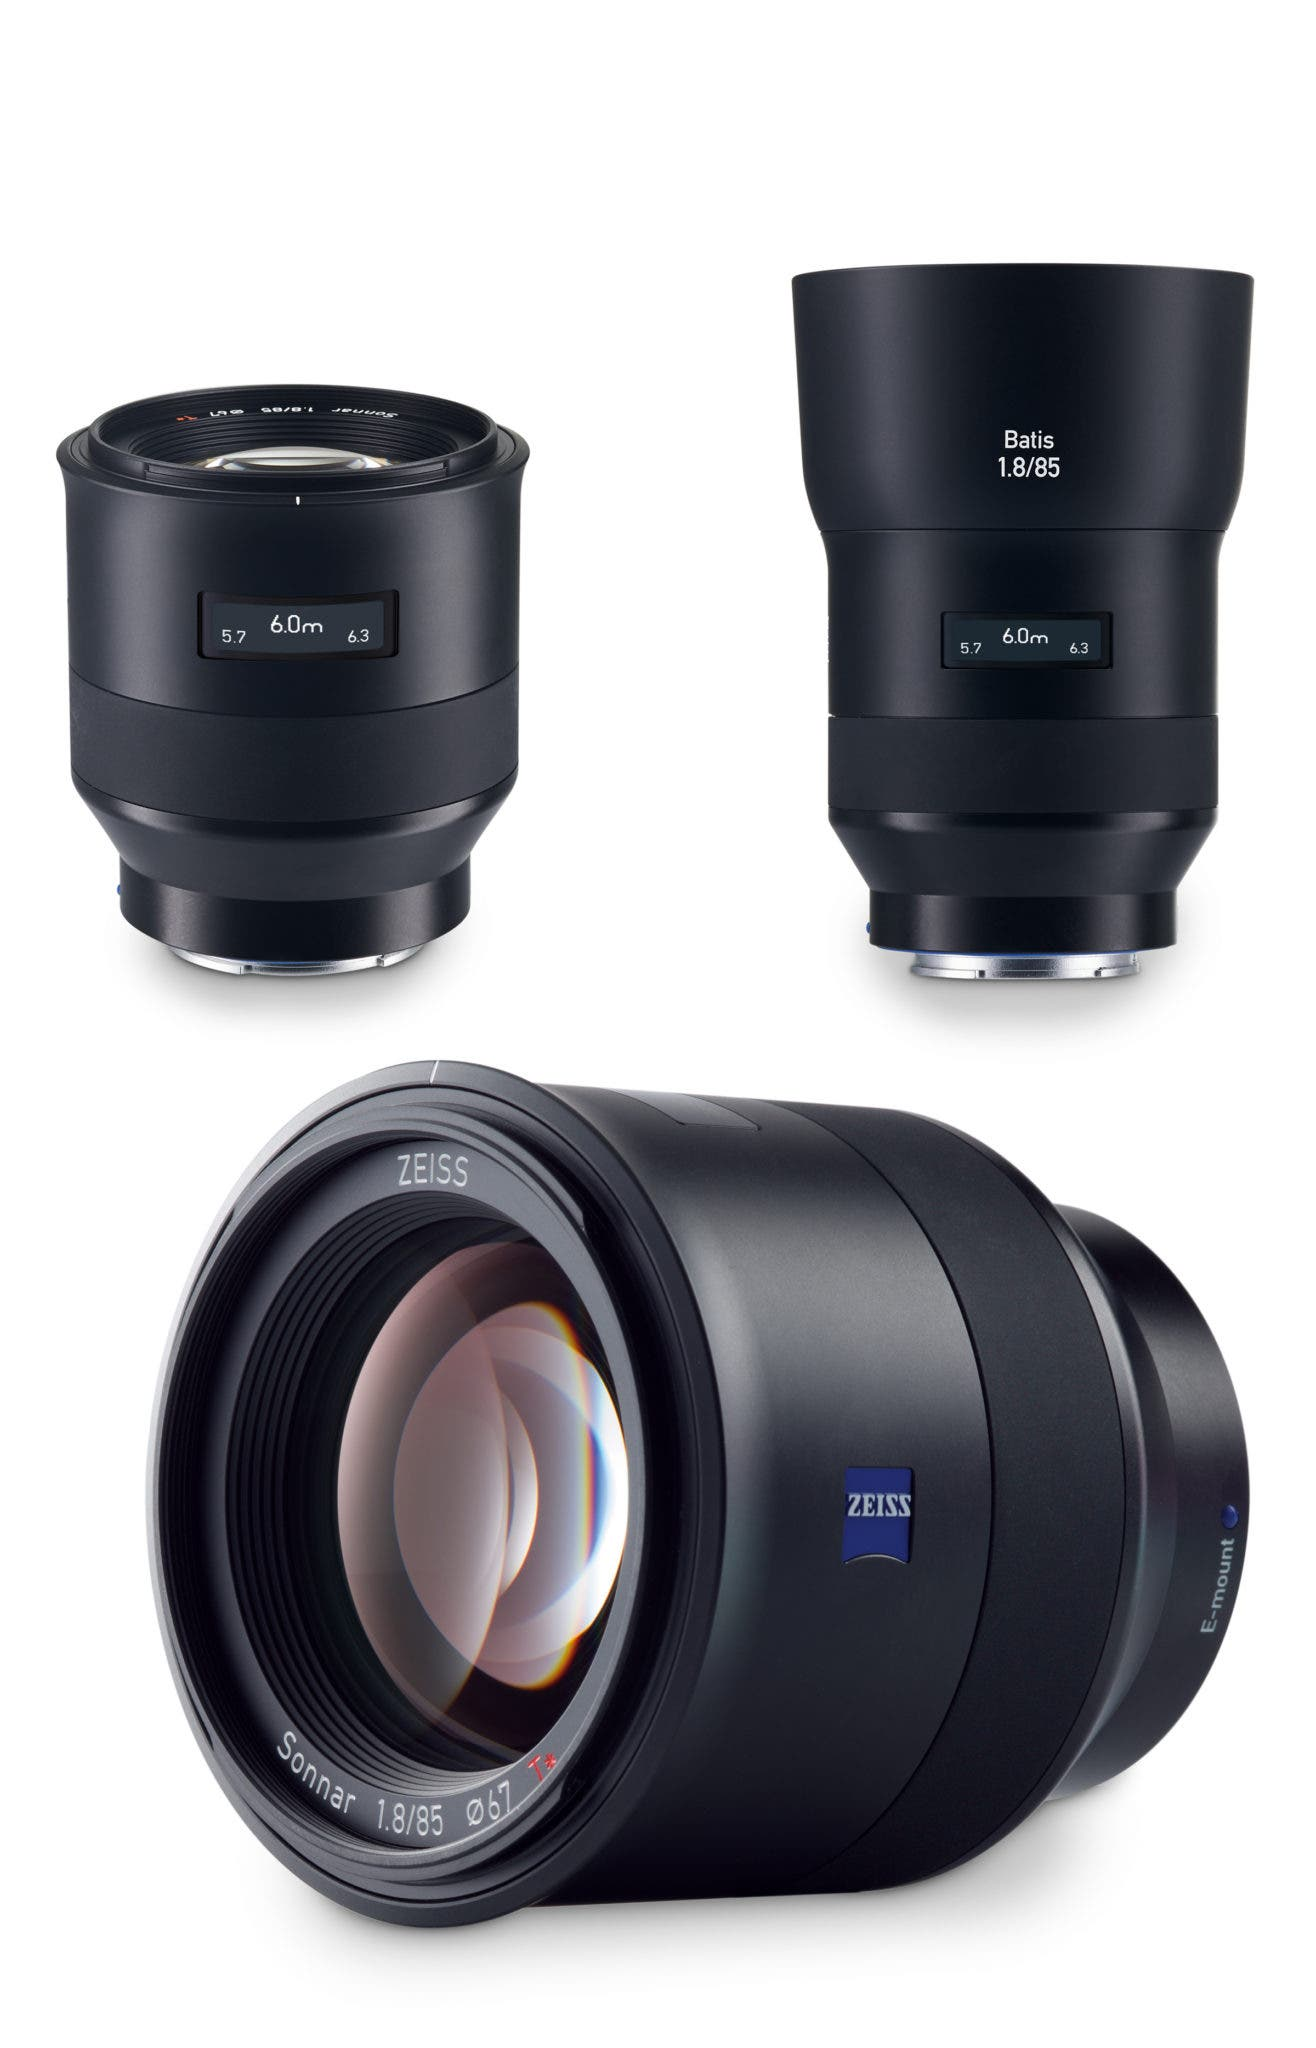 The New Zeiss BATIS Lenses Have an OLED Screen